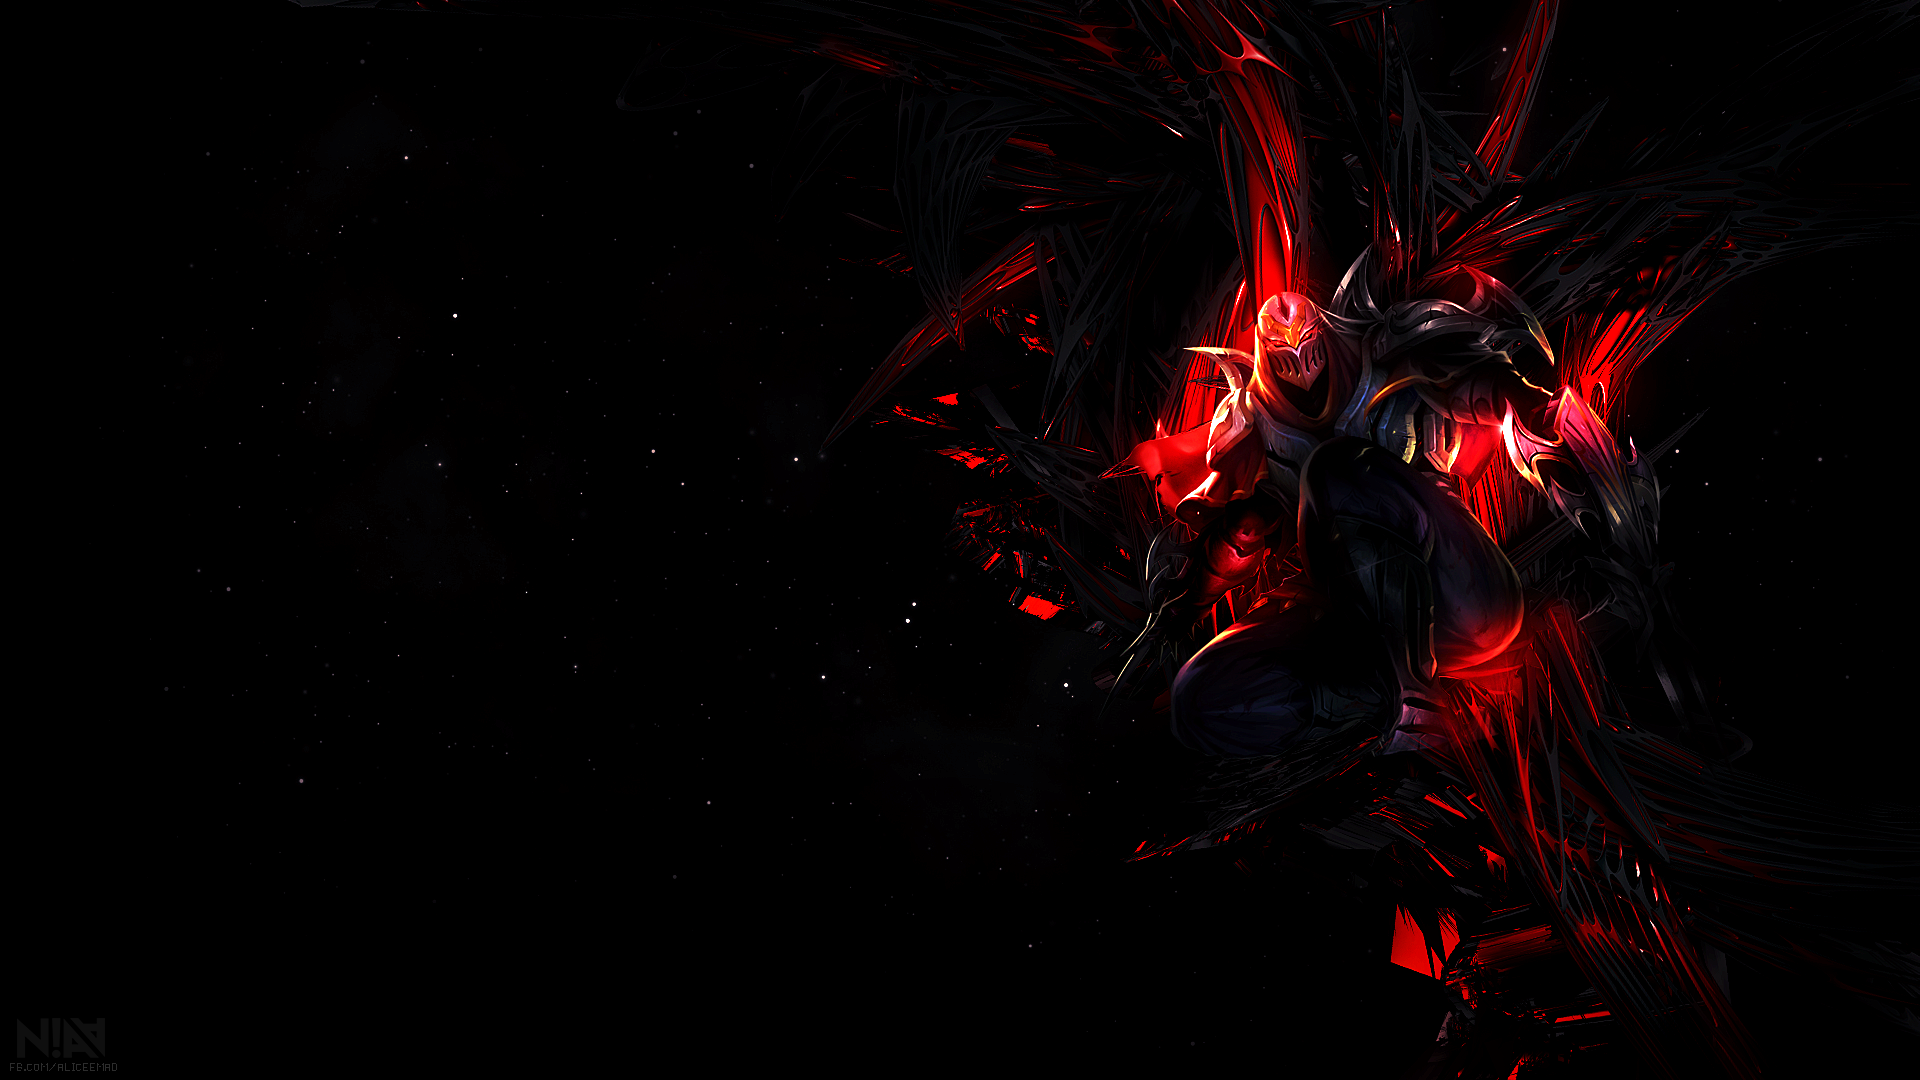 League of legends wallpaper zed by aliceemad on deviantart for Deviantart wallpaper